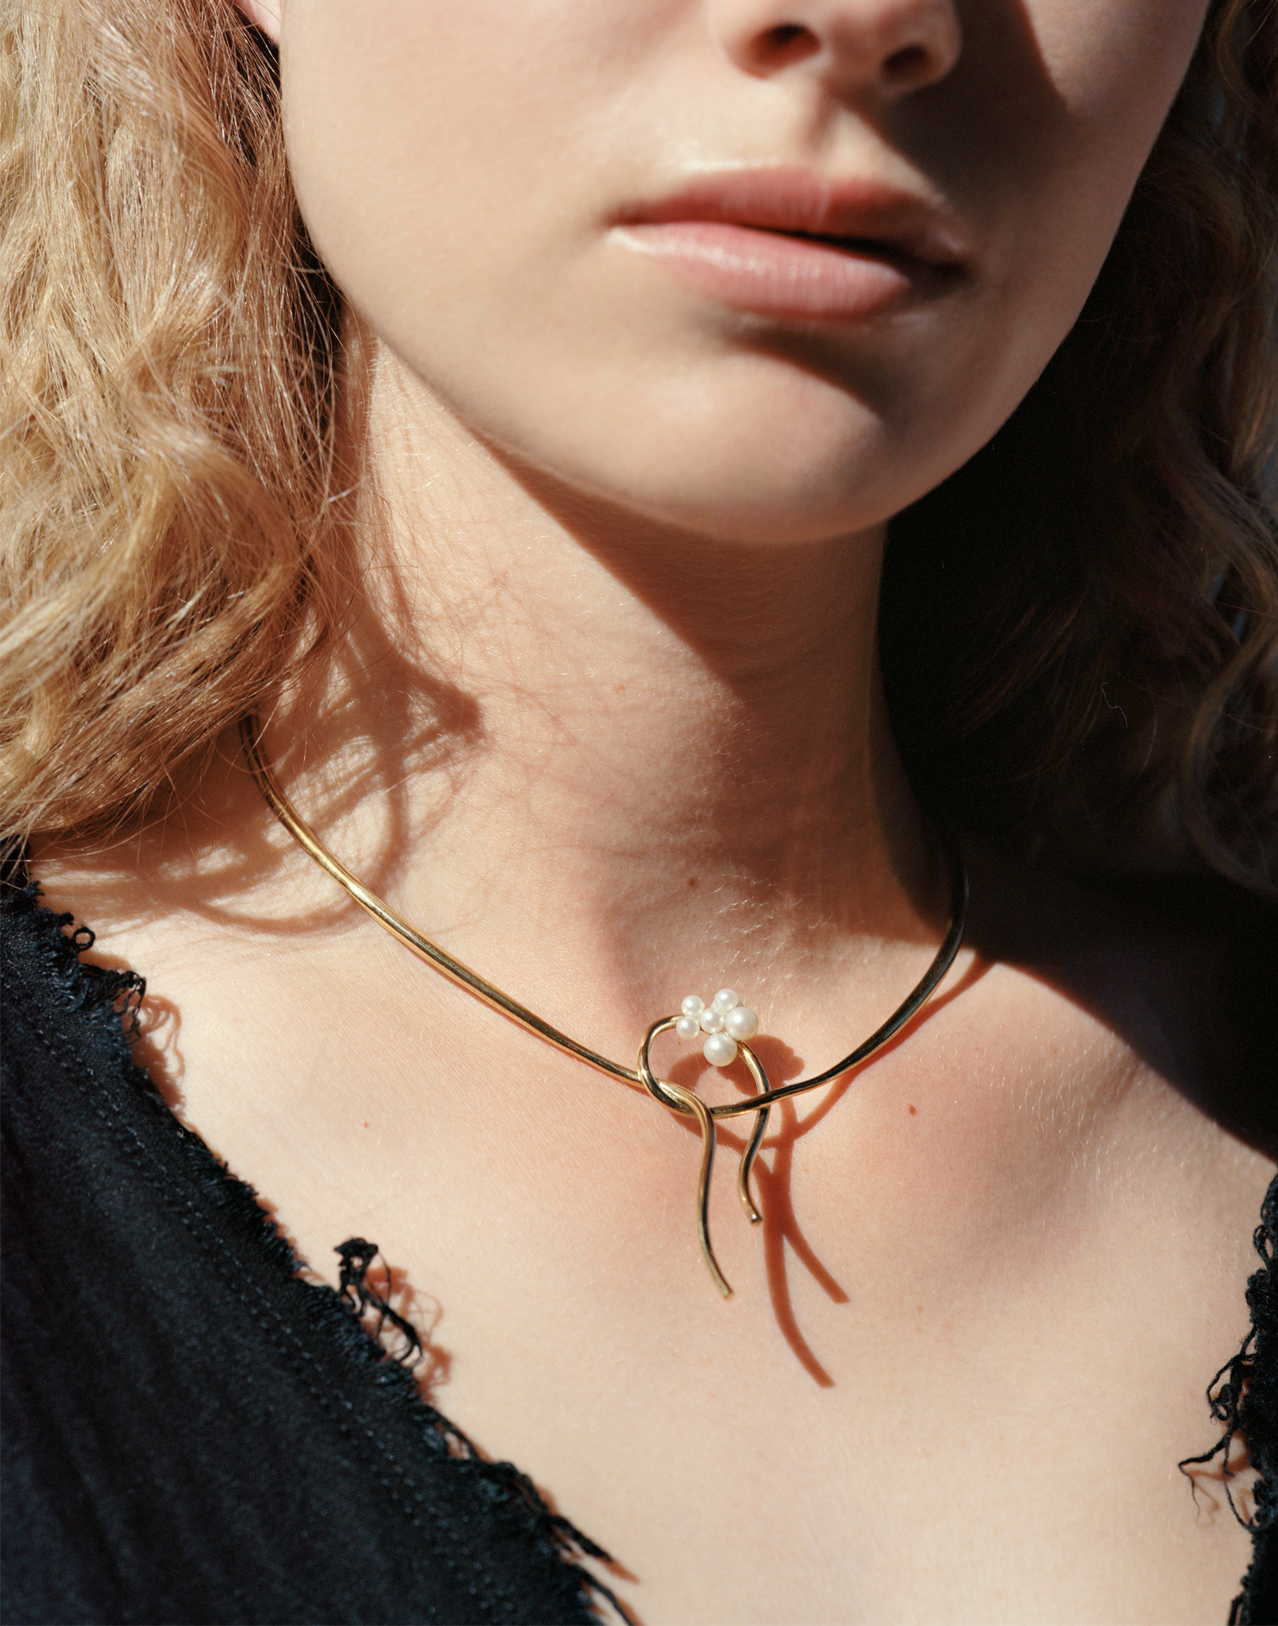 Completedworks-Tied-18ct-Gold-on-Silver-Necklace-A1077-10.jpg